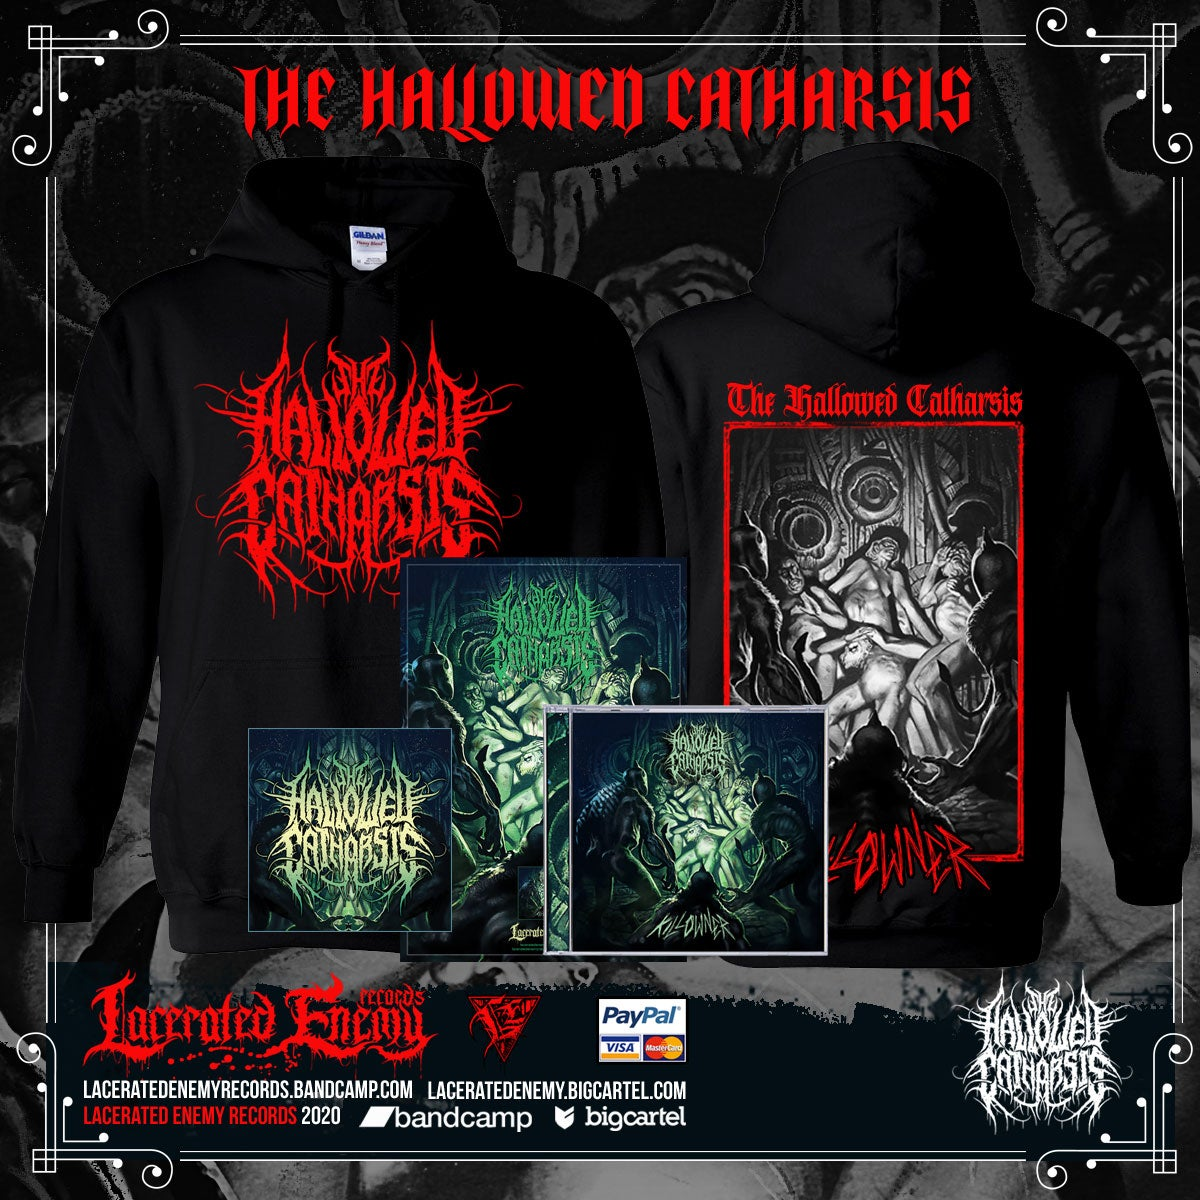 THE HALLOWED CATHARSIS - Killowner - RED hoodie Bundle